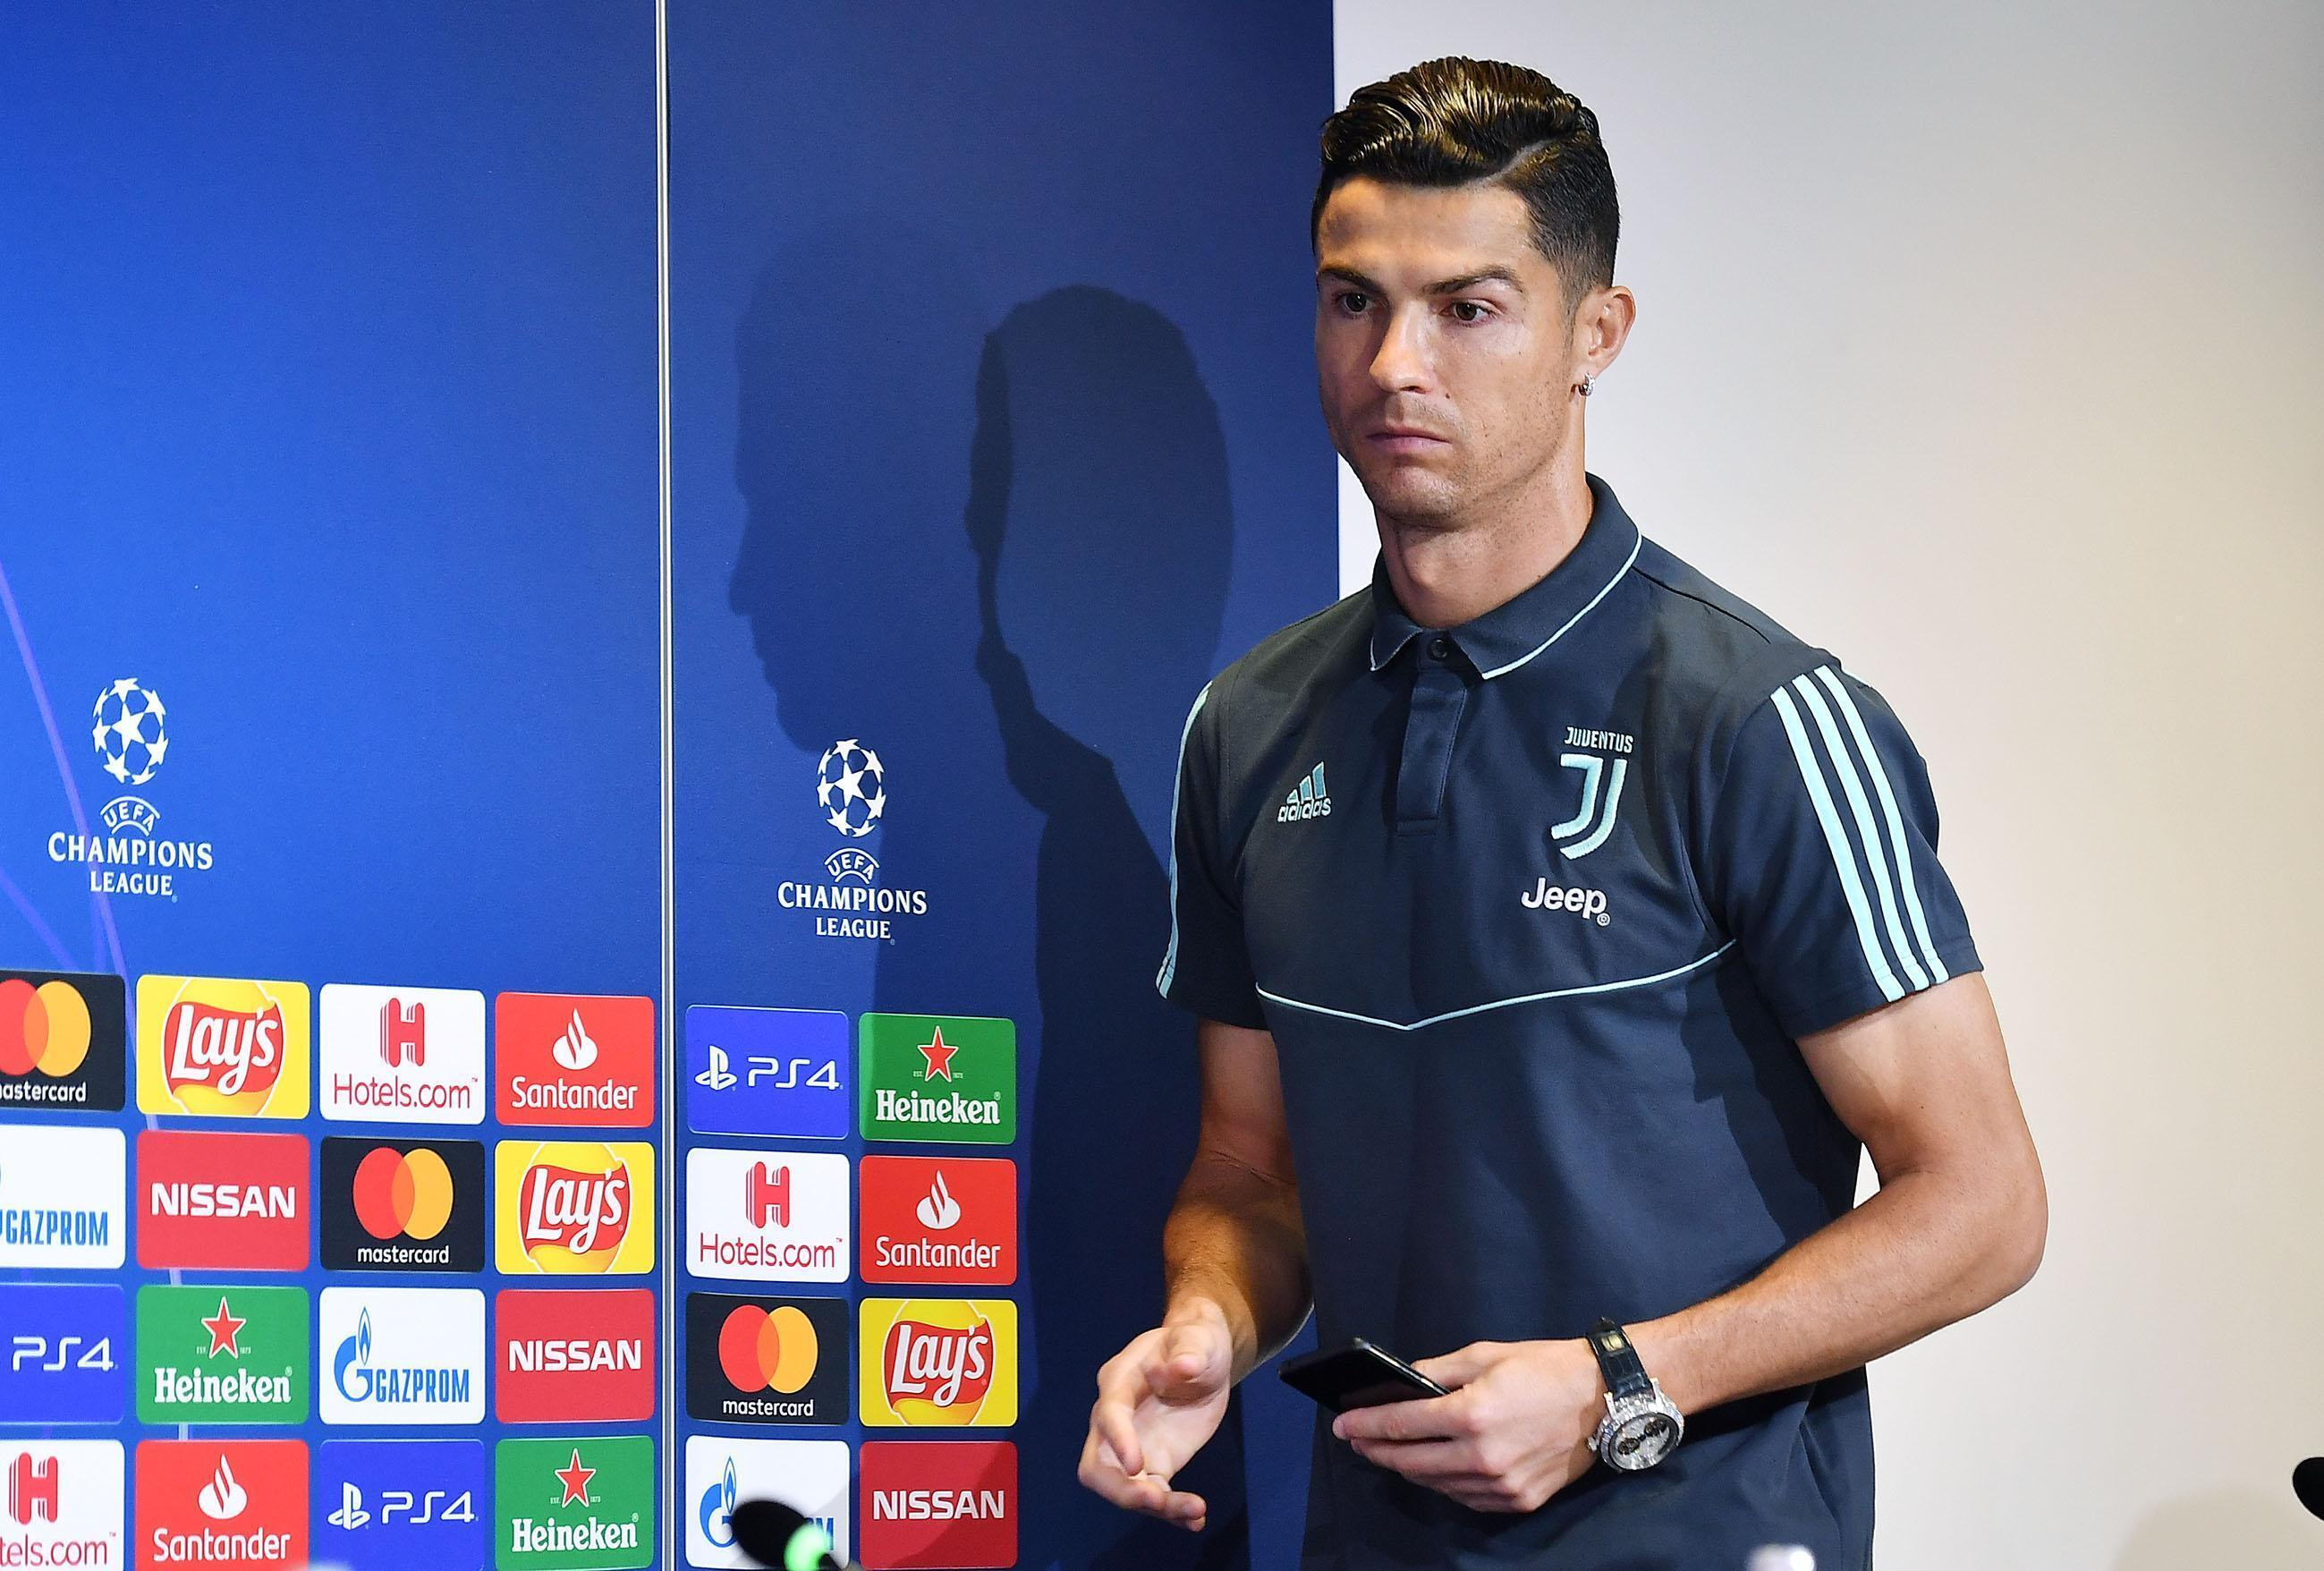 Cristiano Ronaldo's DNA found on evidence obtained from rape accuser: leaked emails